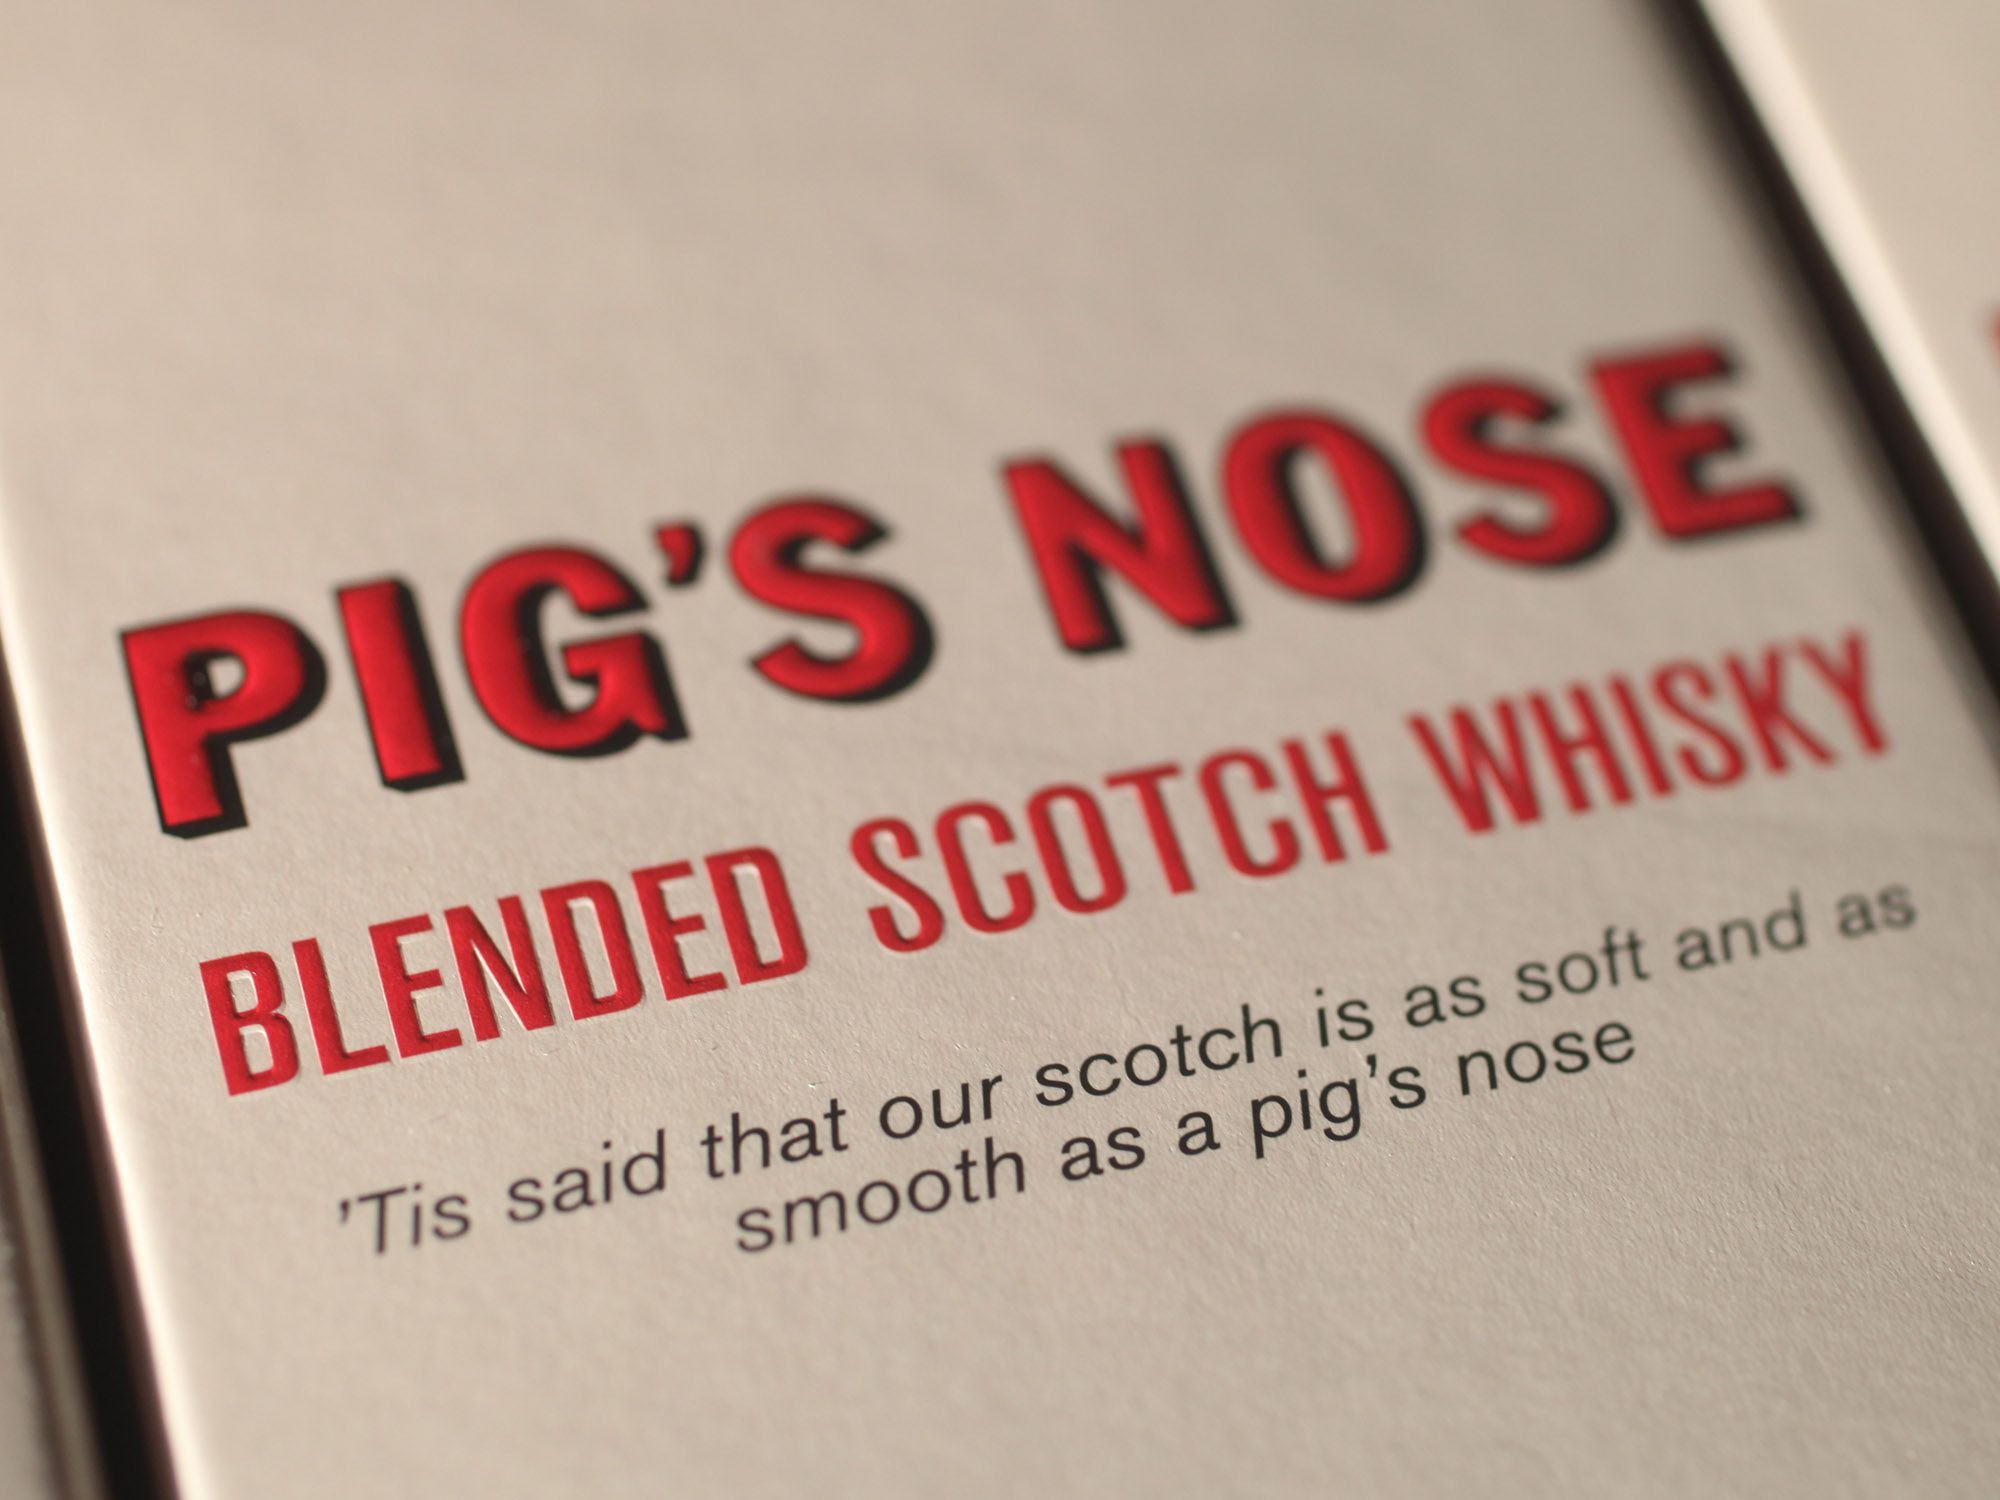 Pig's Nose | Whisky